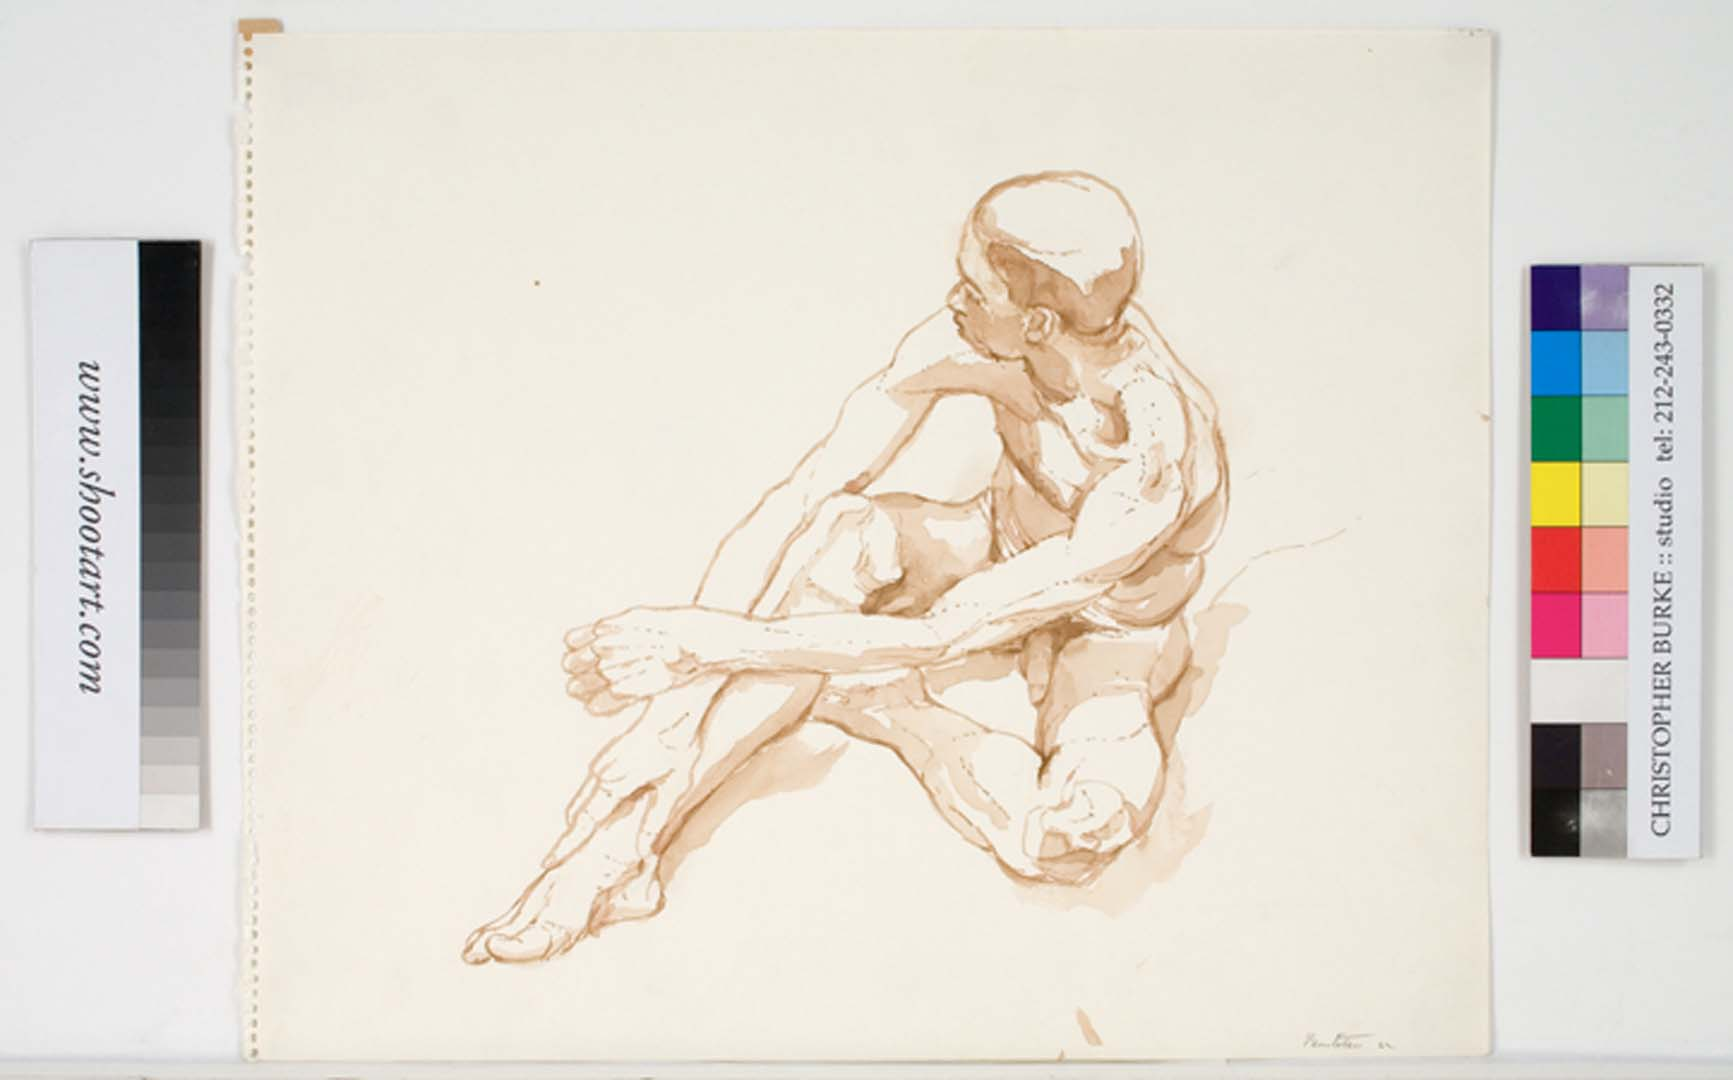 1962 Male Model Seated on Floor Sepia Wash 13.875 x 16.875